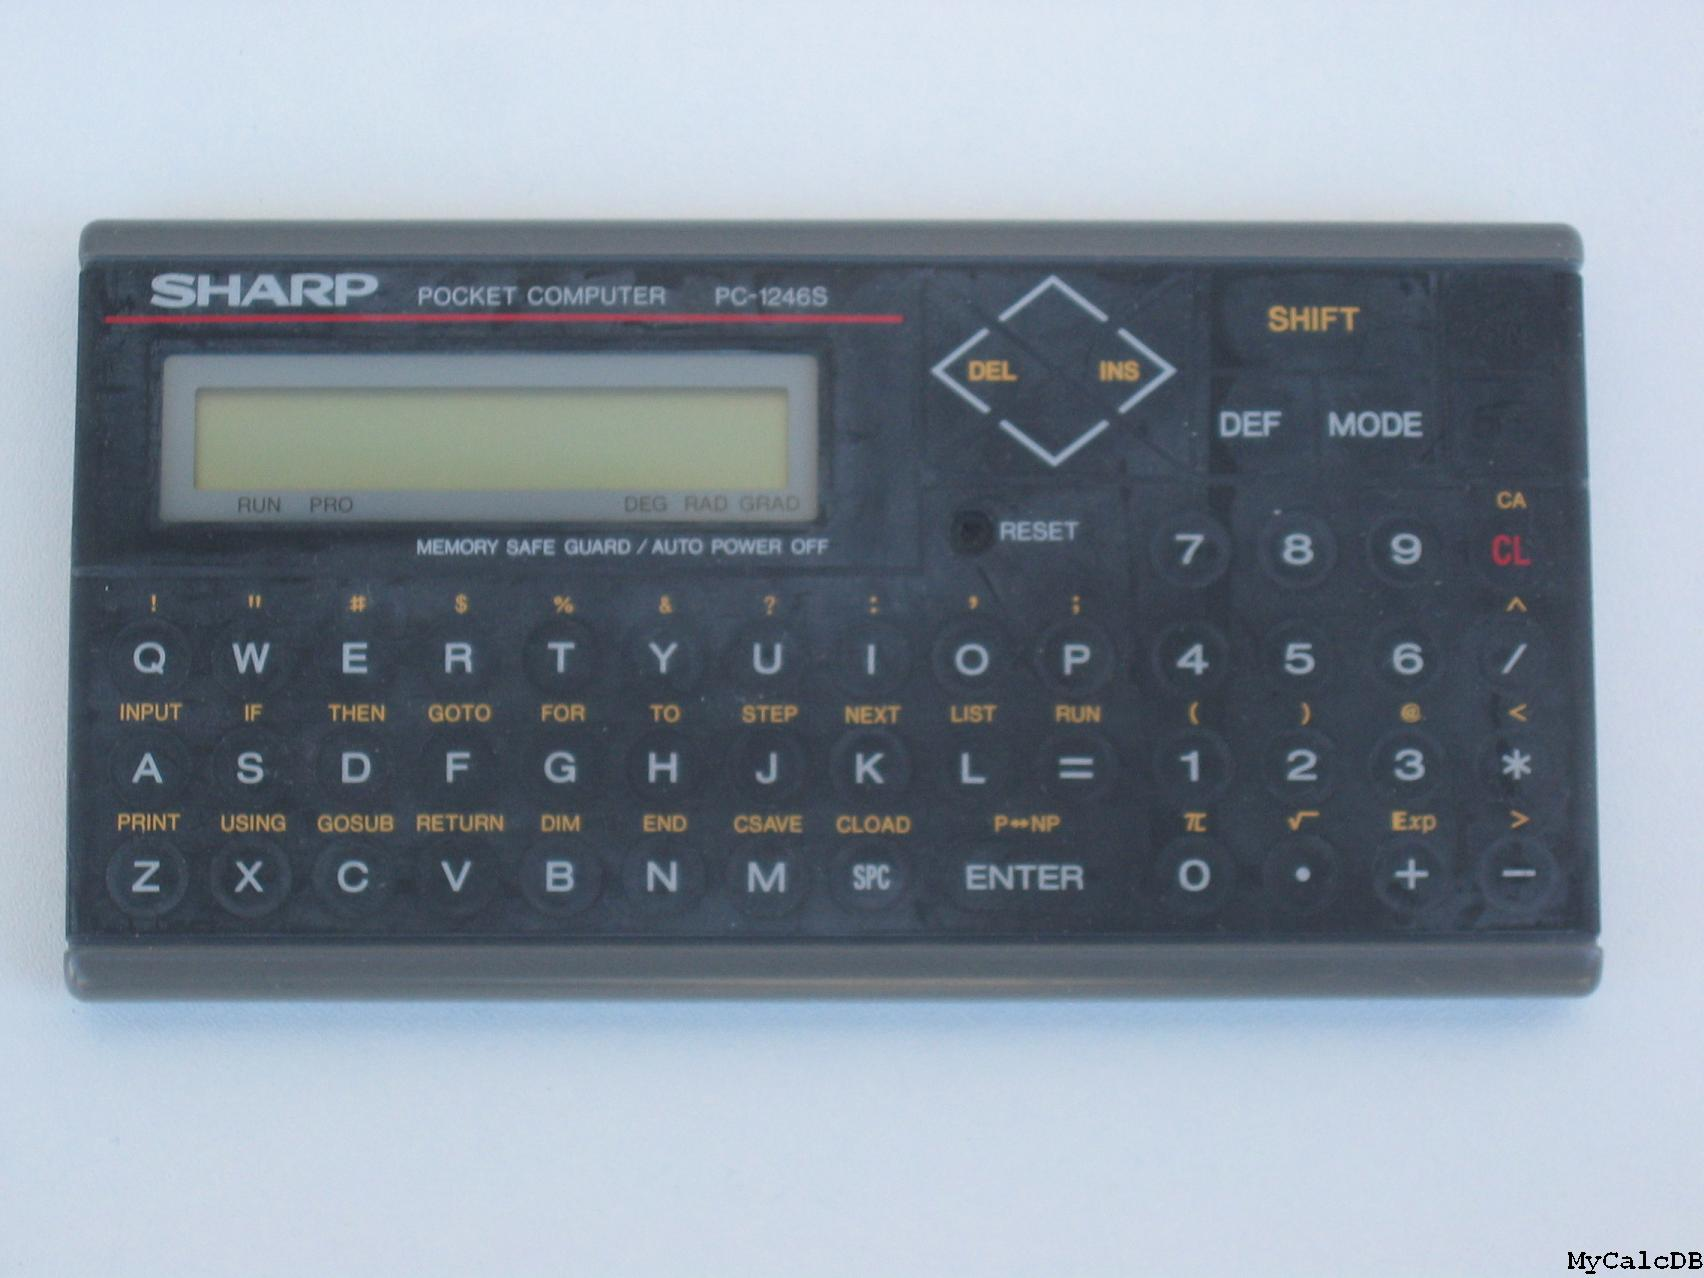 Sharp PC-1246S